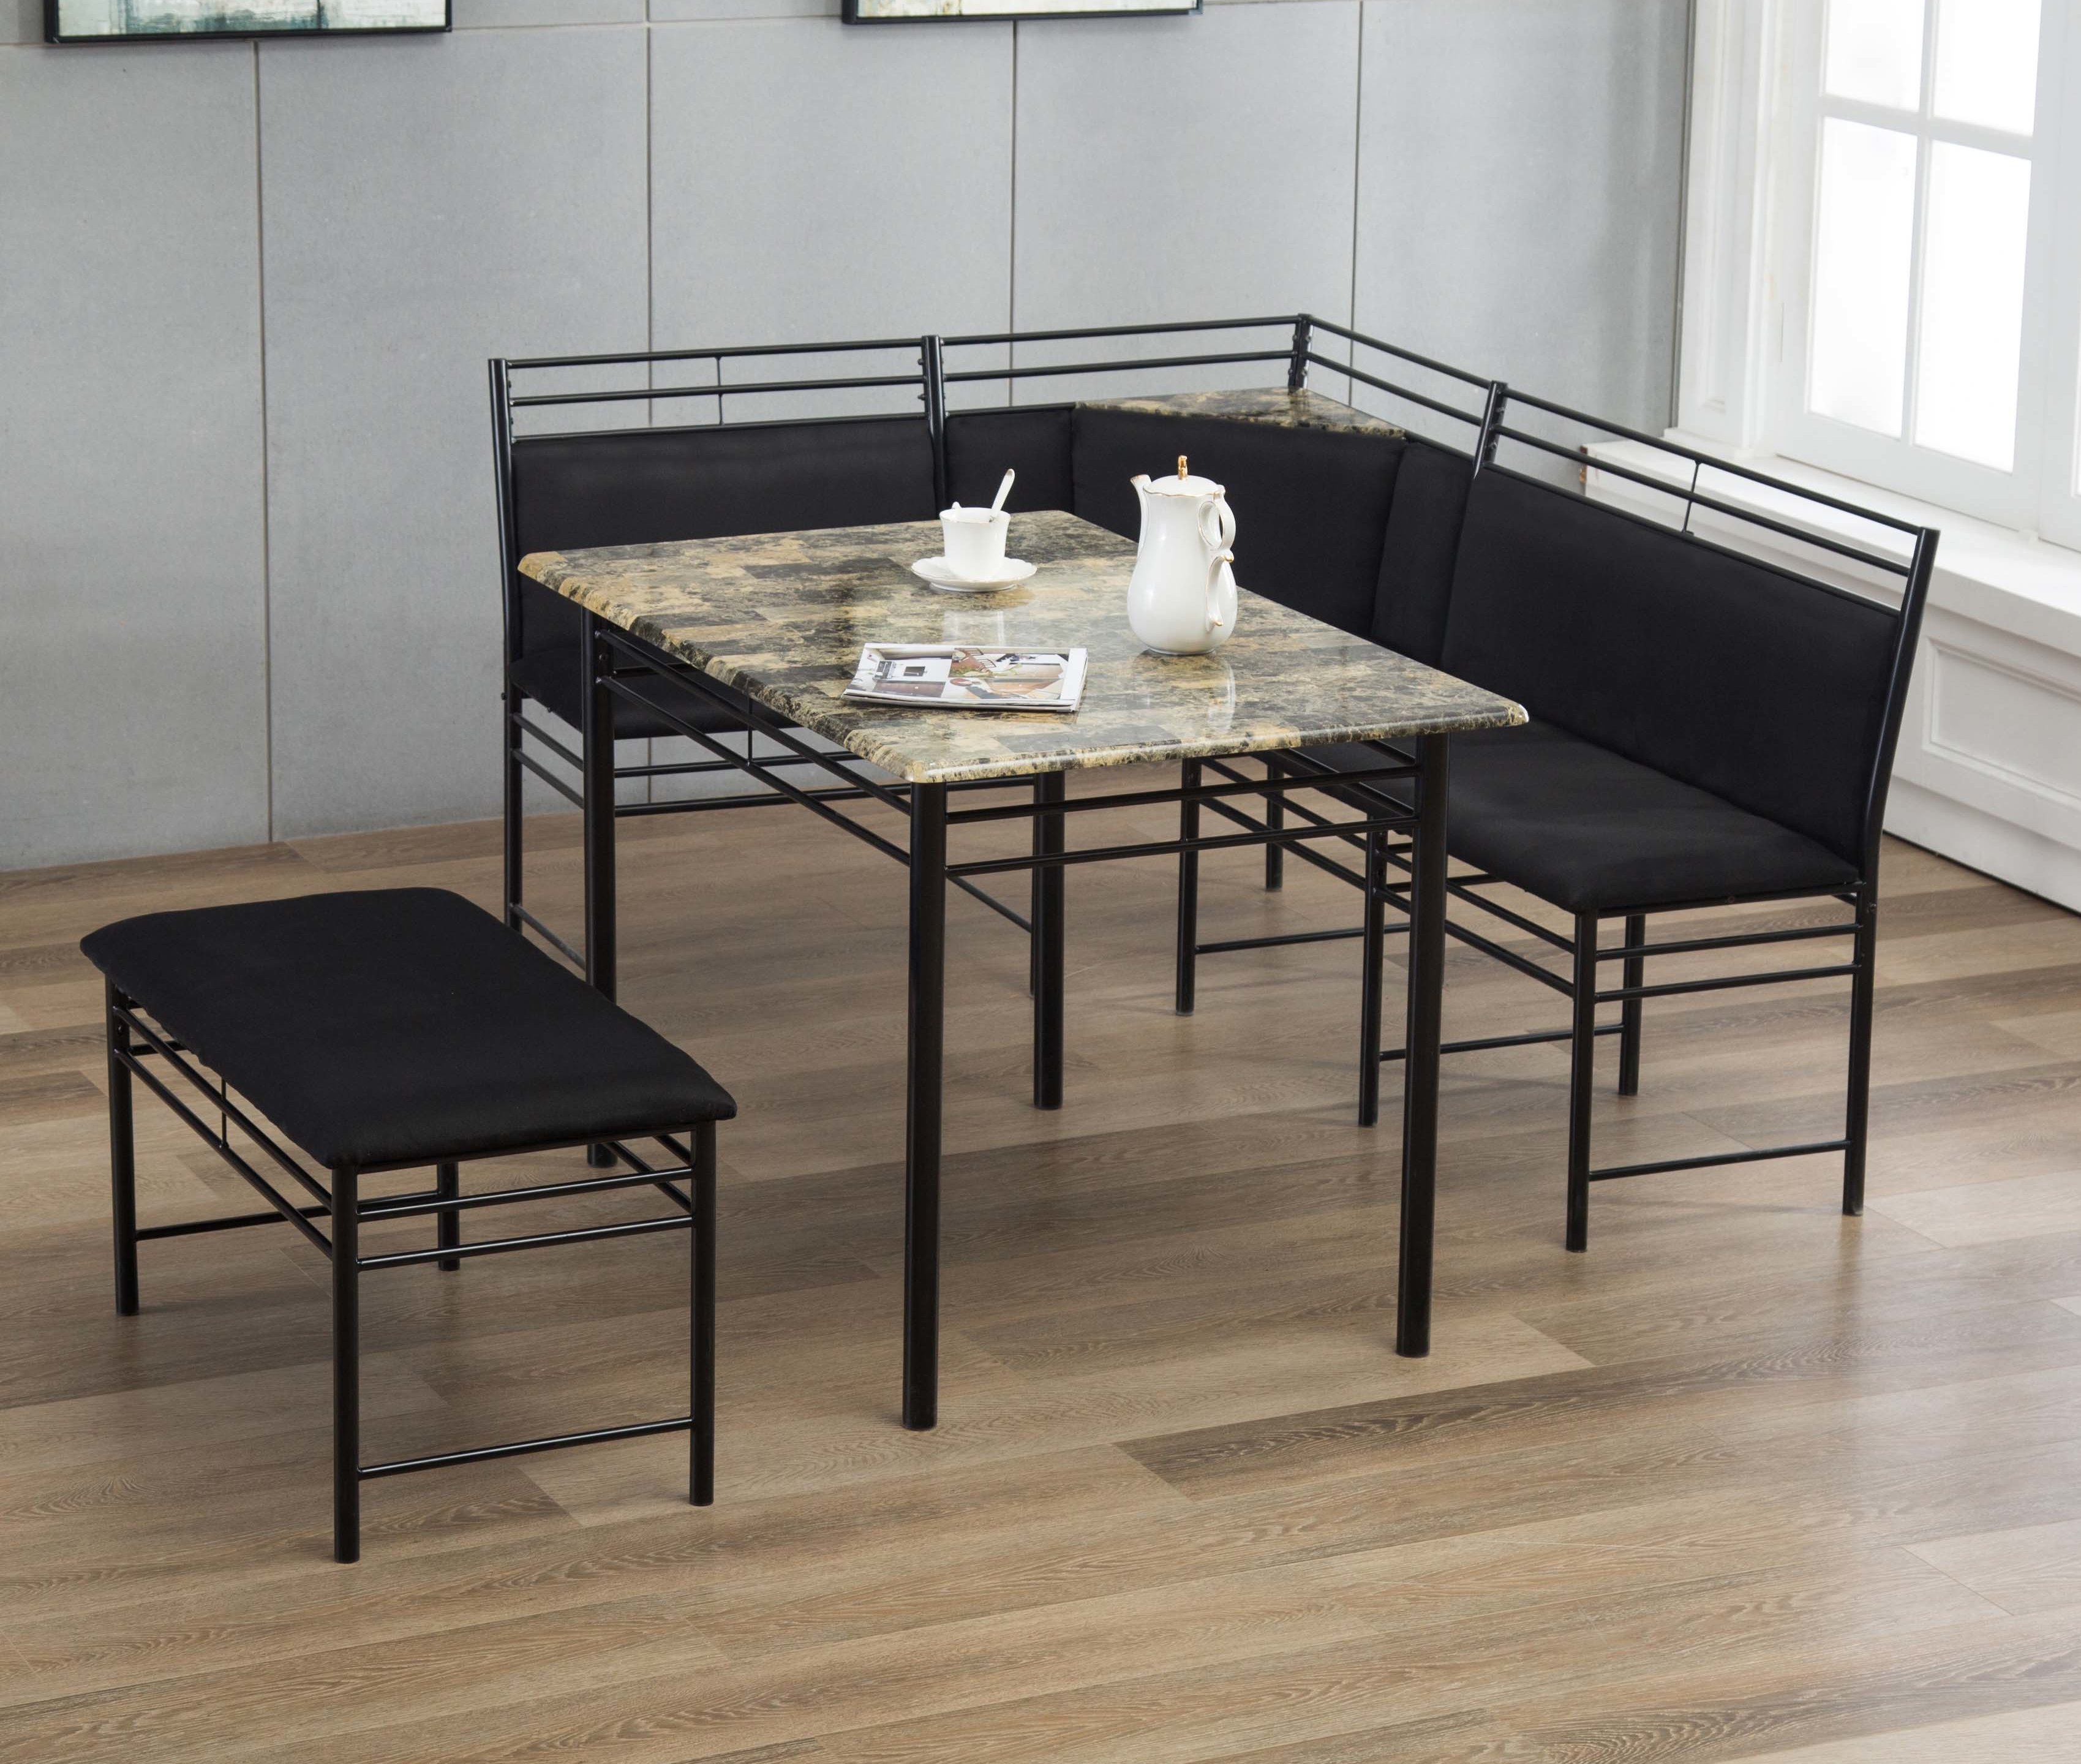 Tyrell 3 Piece Breakfast Nook Dining Set Pertaining To Most Up To Date 3 Piece Breakfast Dining Sets (Photo 1 of 20)